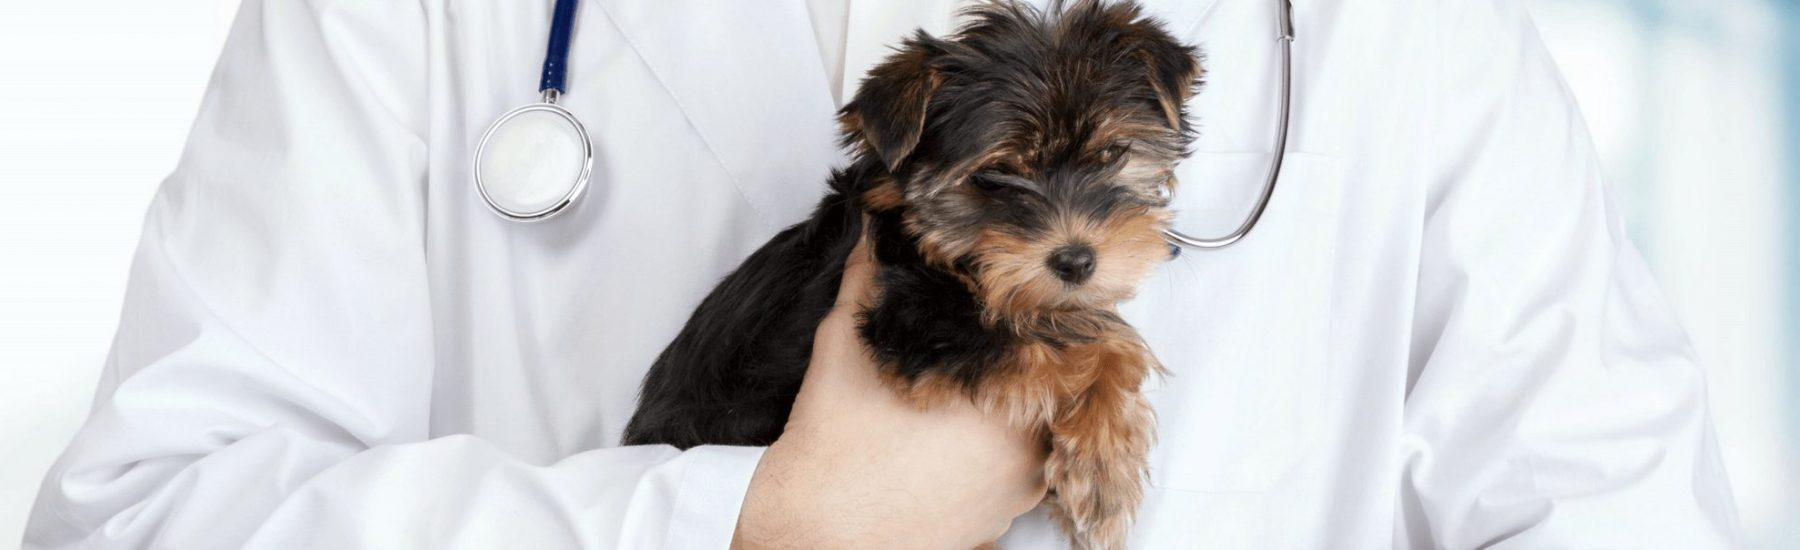 Cute Yorkshire Terrier puppy held by a Vet